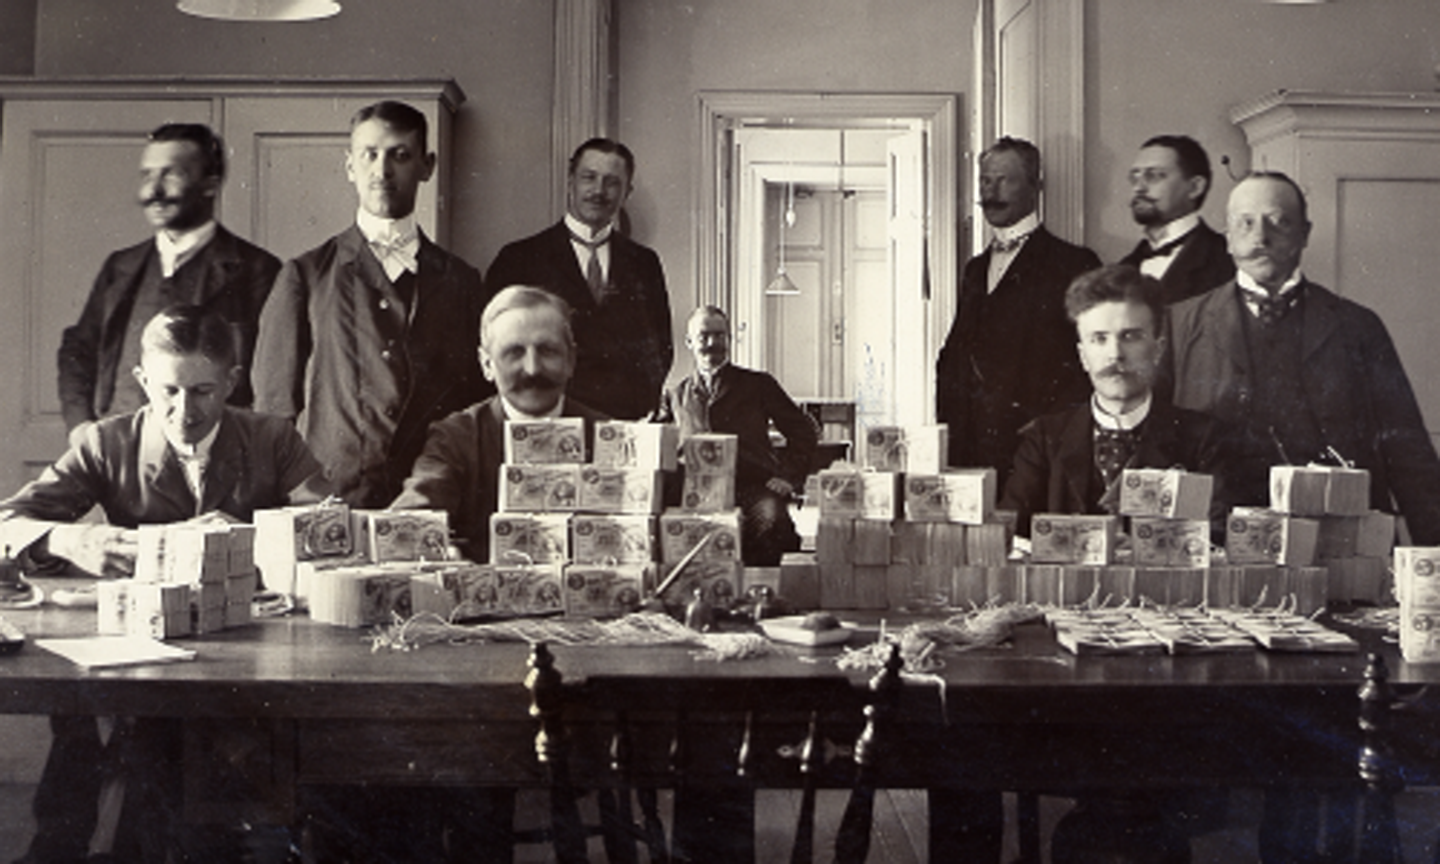 Counting banknotes at the Riksbank's banknote office at Järntorget on 17 June 1904.